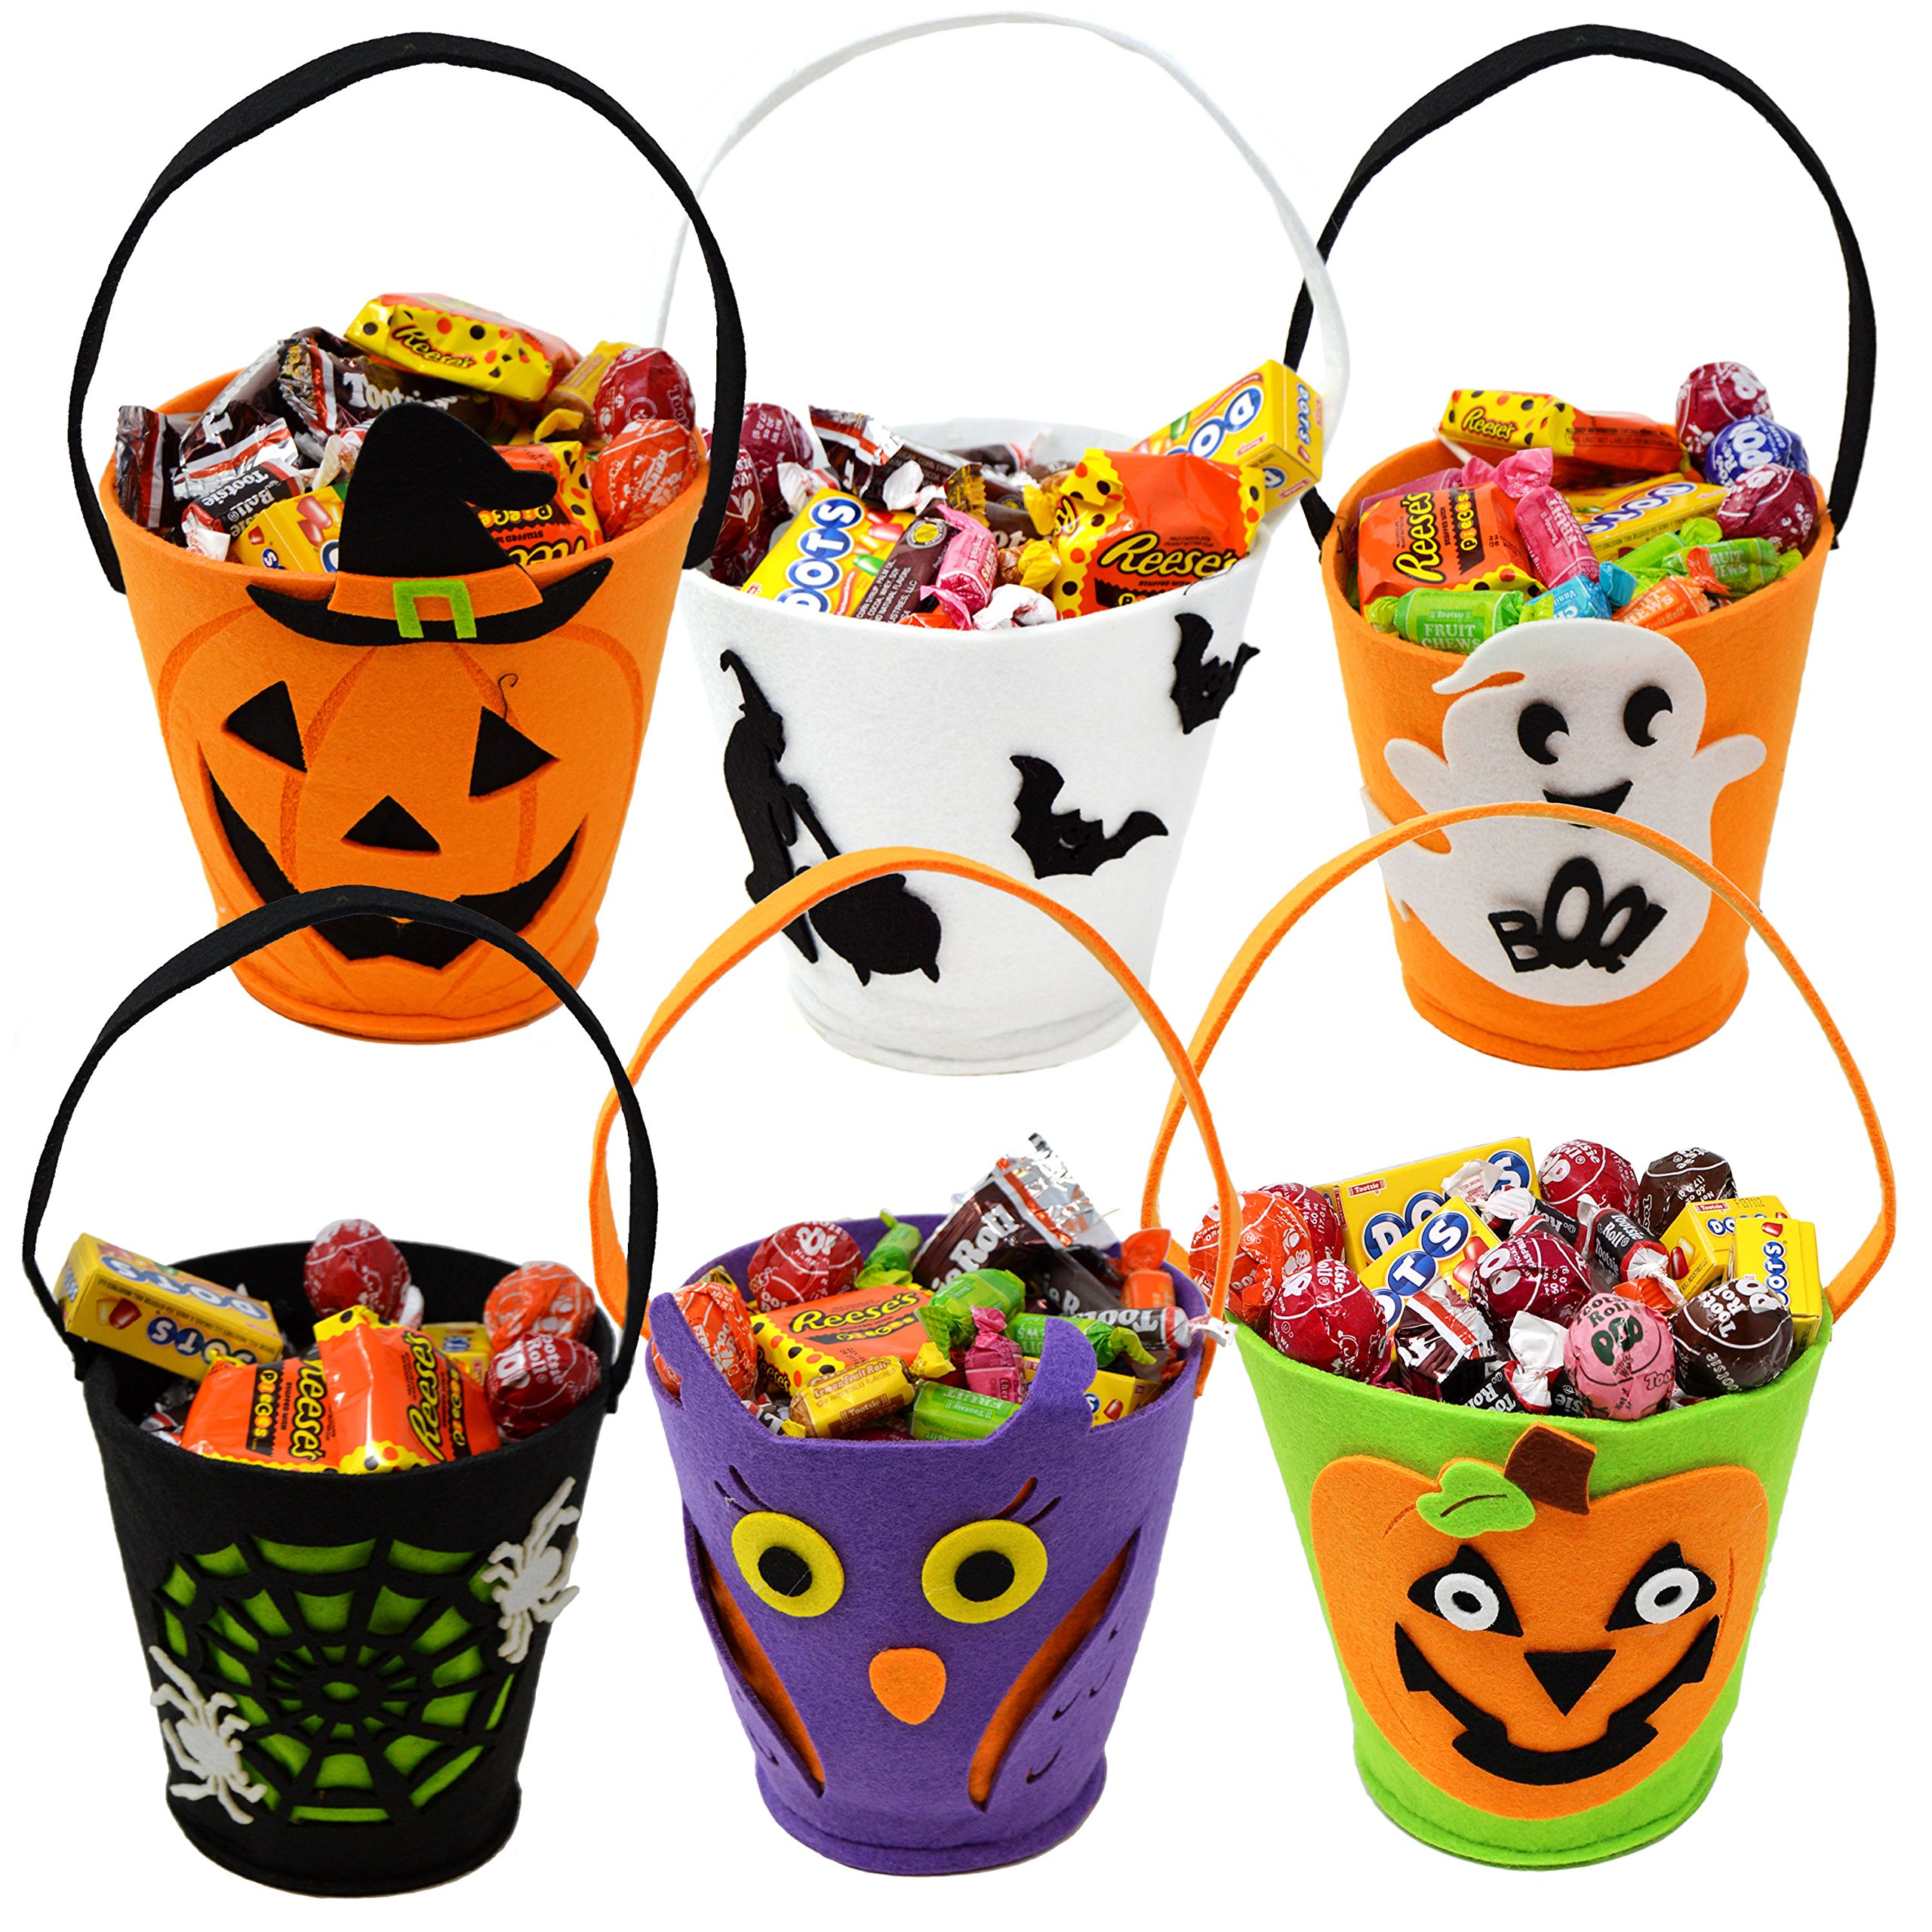 "JOYIN 6 Packs 6.5"" Candy Felt Holder Buckets with Handle for Trick-or-Treating Bags, Halloween Party Favors, Halloween Snacks, Halloween Goodie Bags, Bucket Decoration, Candy Pails"